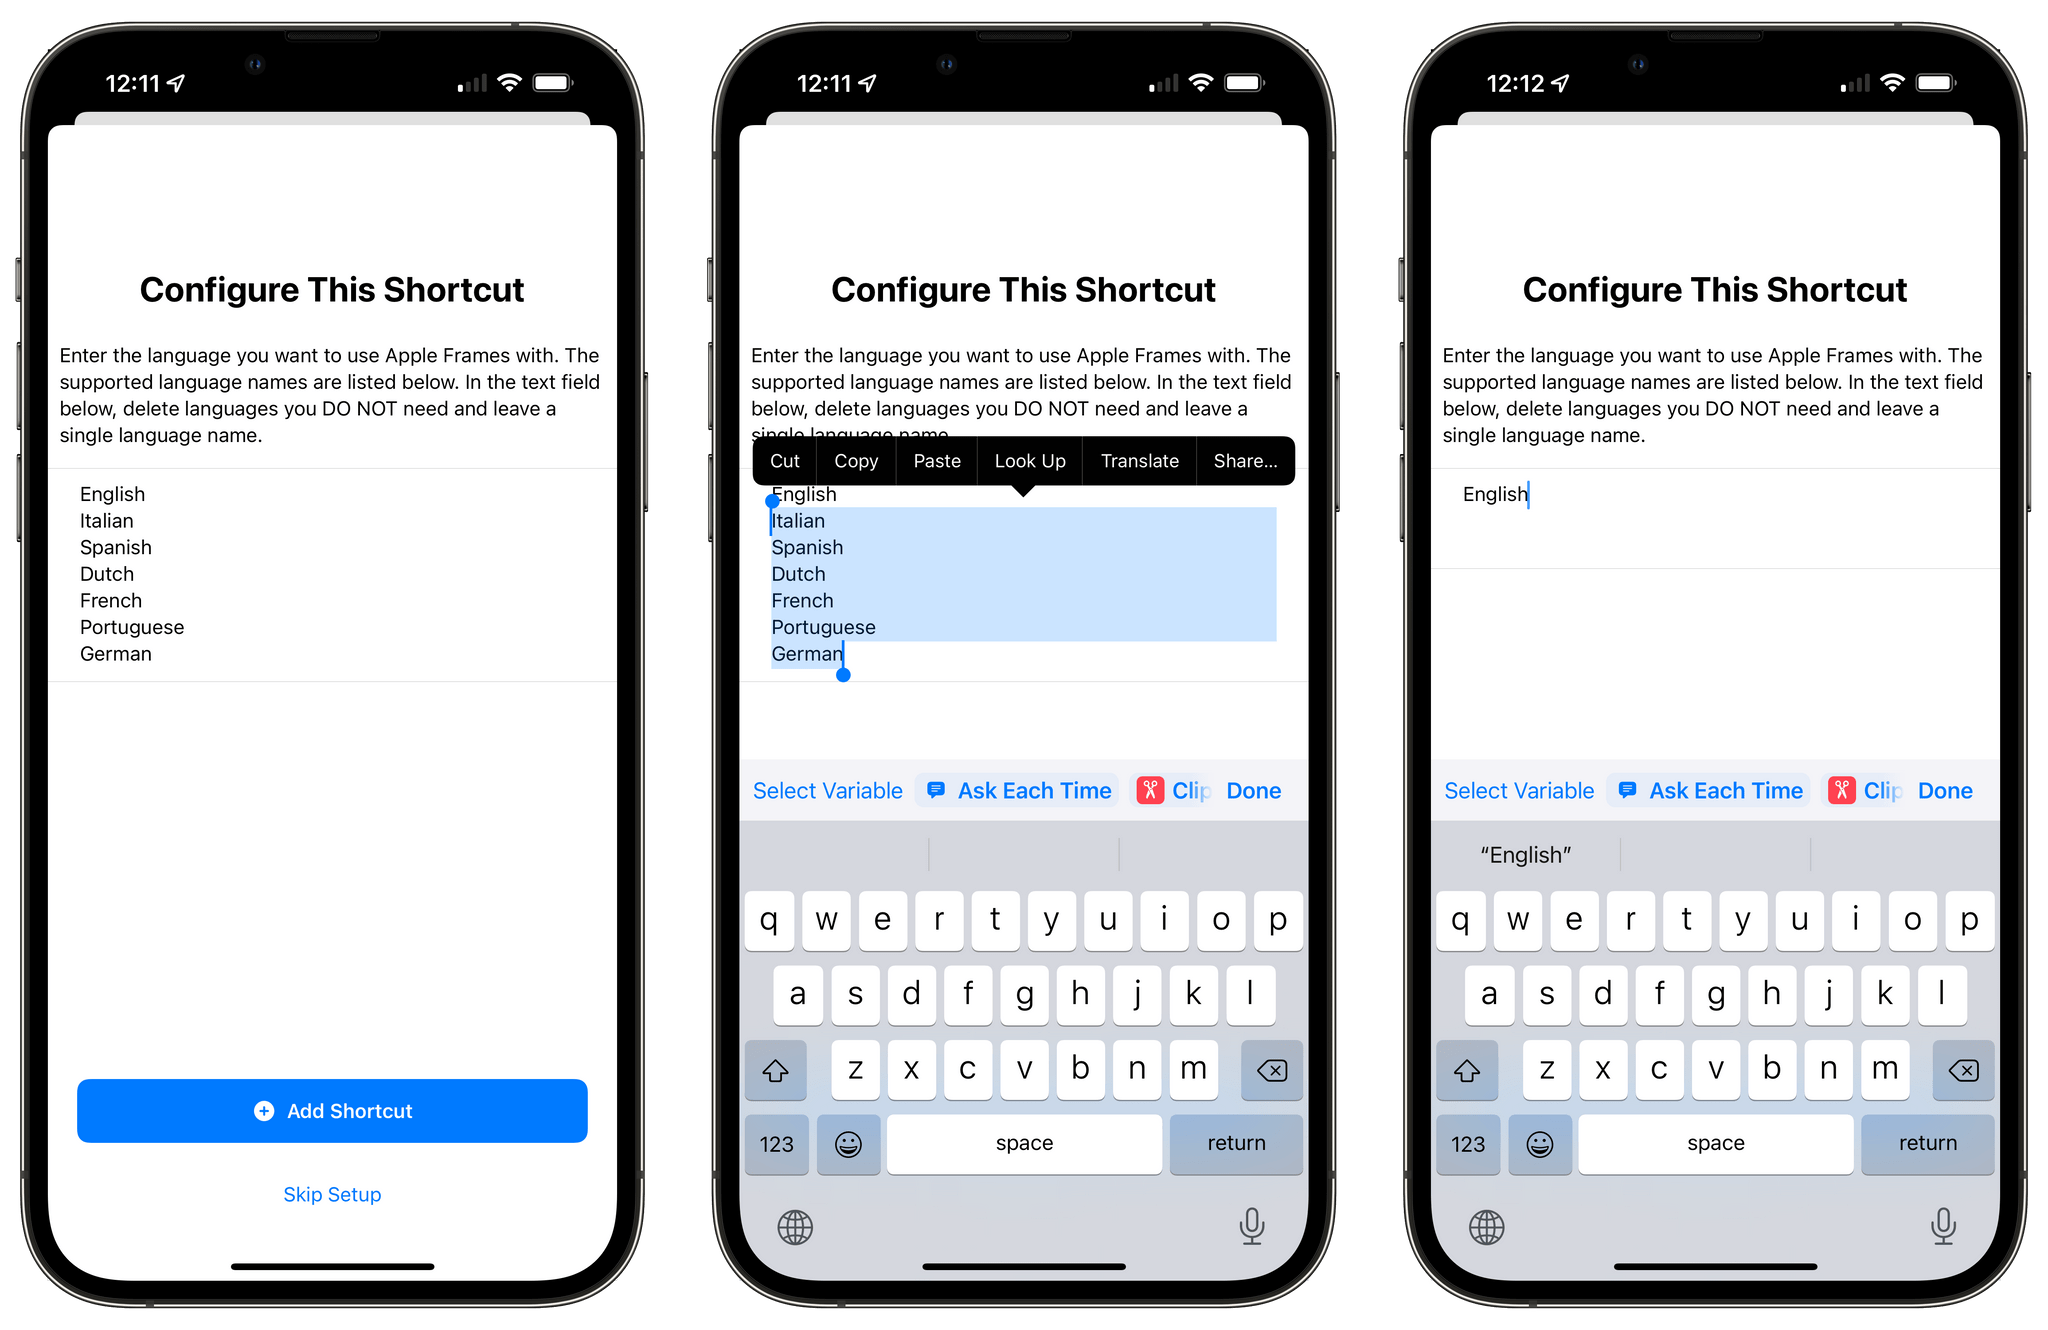 Leave the language you want to use. I wish I could offer a nicer experience to pick languages; unfortunately, bugs in Shortcuts for iOS 15.1 prevented me from building a more intuitive experience to pick languages at setup.